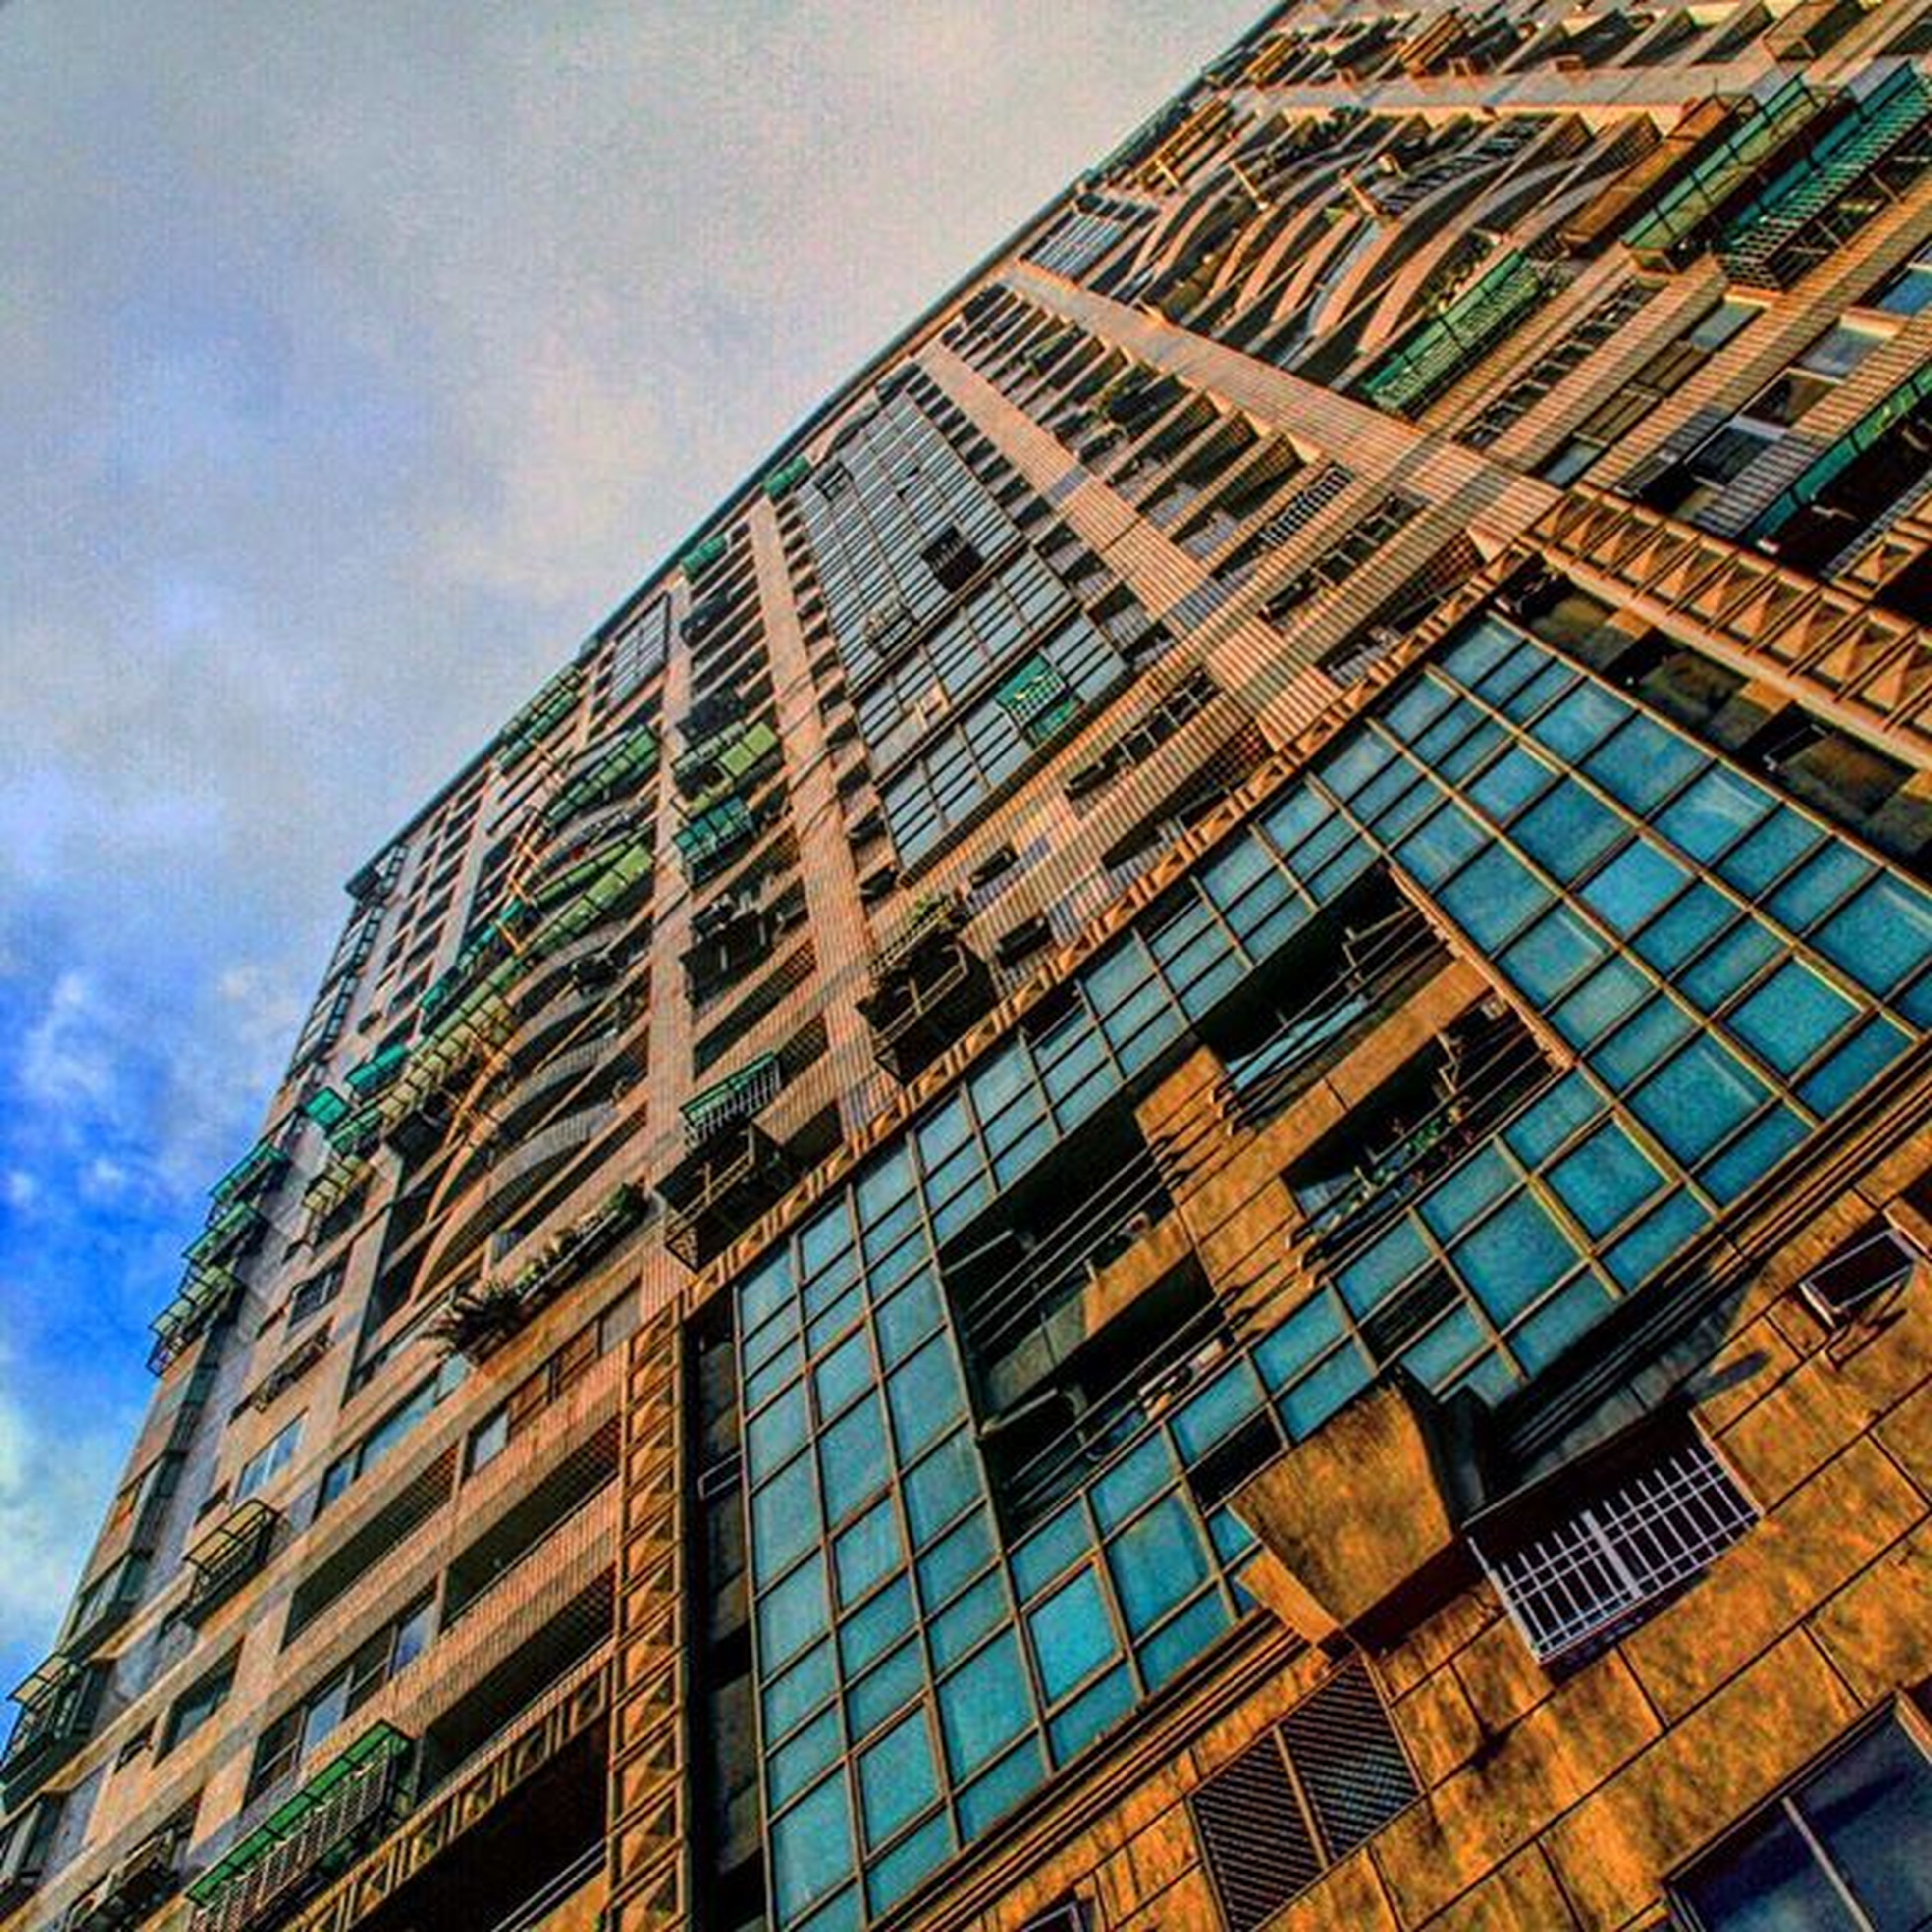 architecture, low angle view, built structure, building exterior, sky, window, building, glass - material, modern, cloud - sky, reflection, office building, day, city, no people, cloud, outdoors, residential building, residential structure, architectural feature